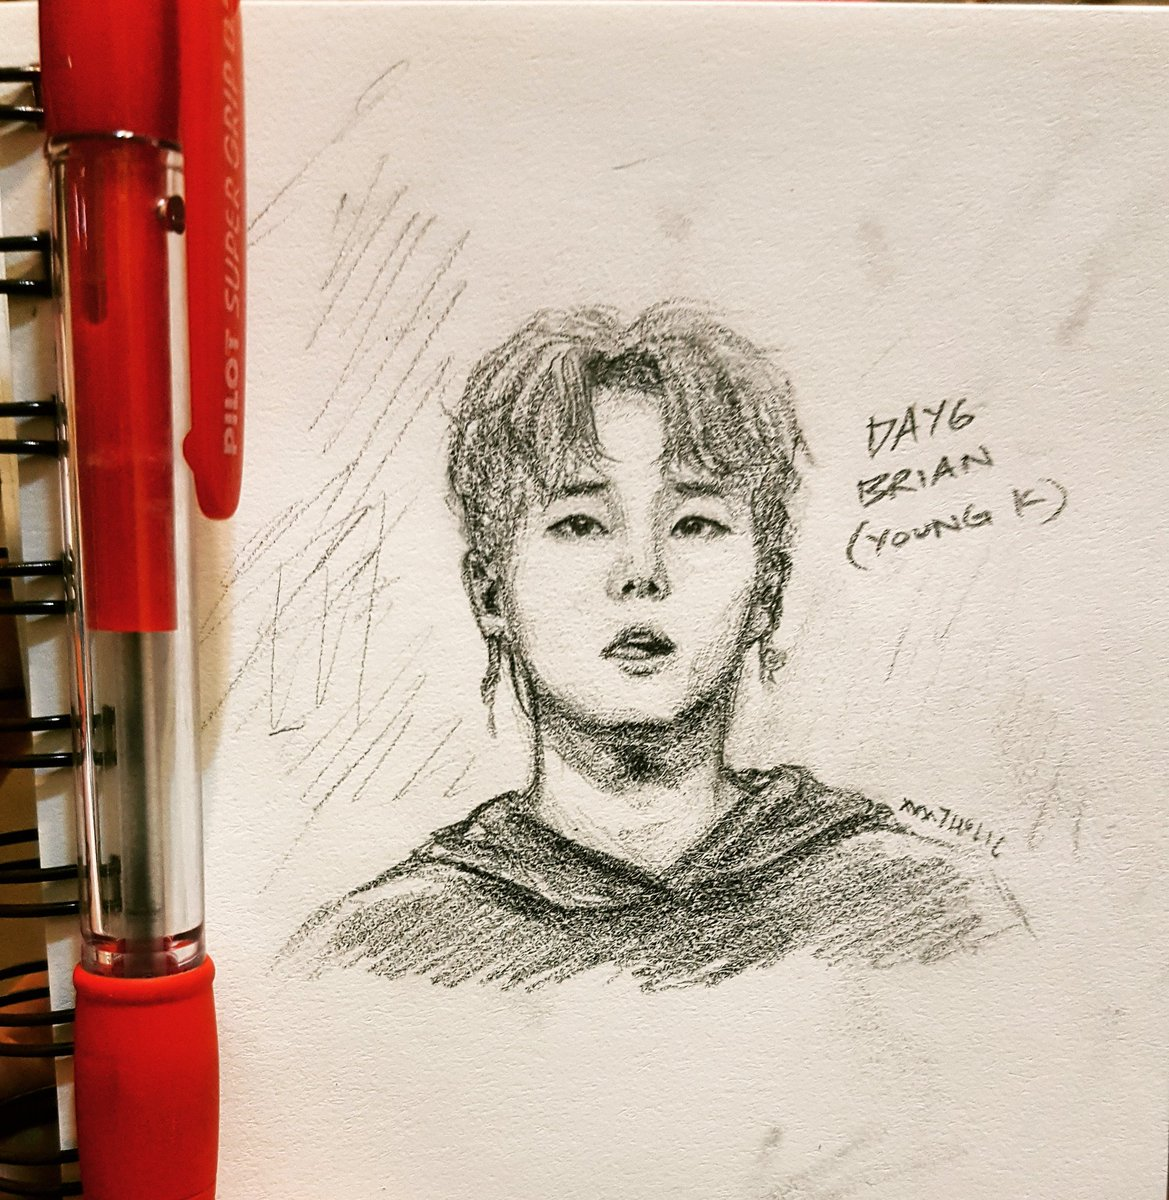 Just gon throw these out to start things off #DAY6 #day6fanart #youngk aka  #briankang lmao #kpopfanart <br>http://pic.twitter.com/phV692L84x